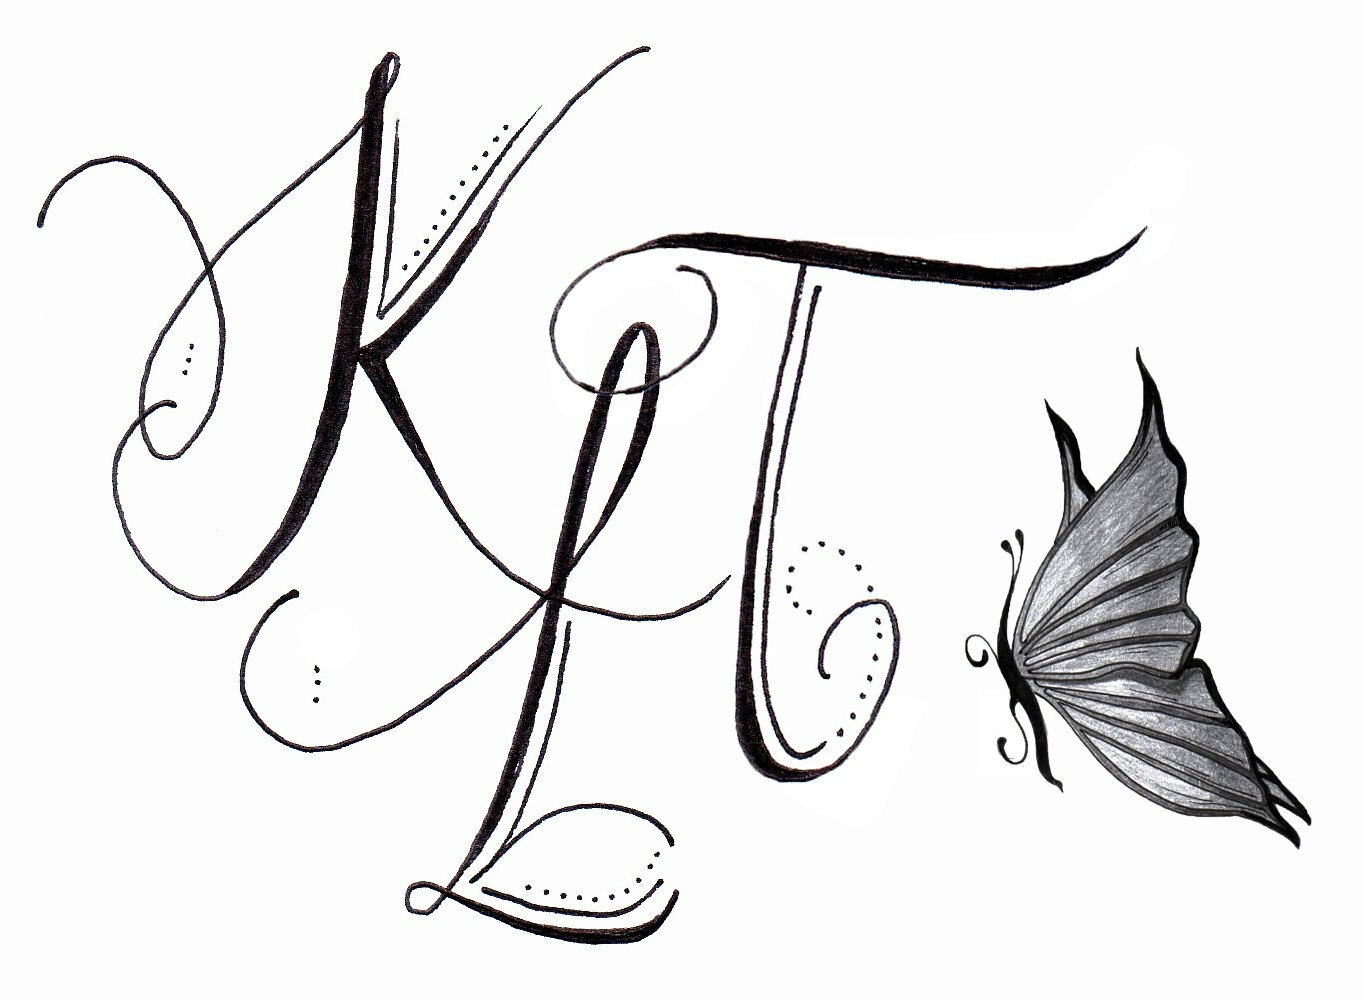 Klt L Association Emily Calligraphy